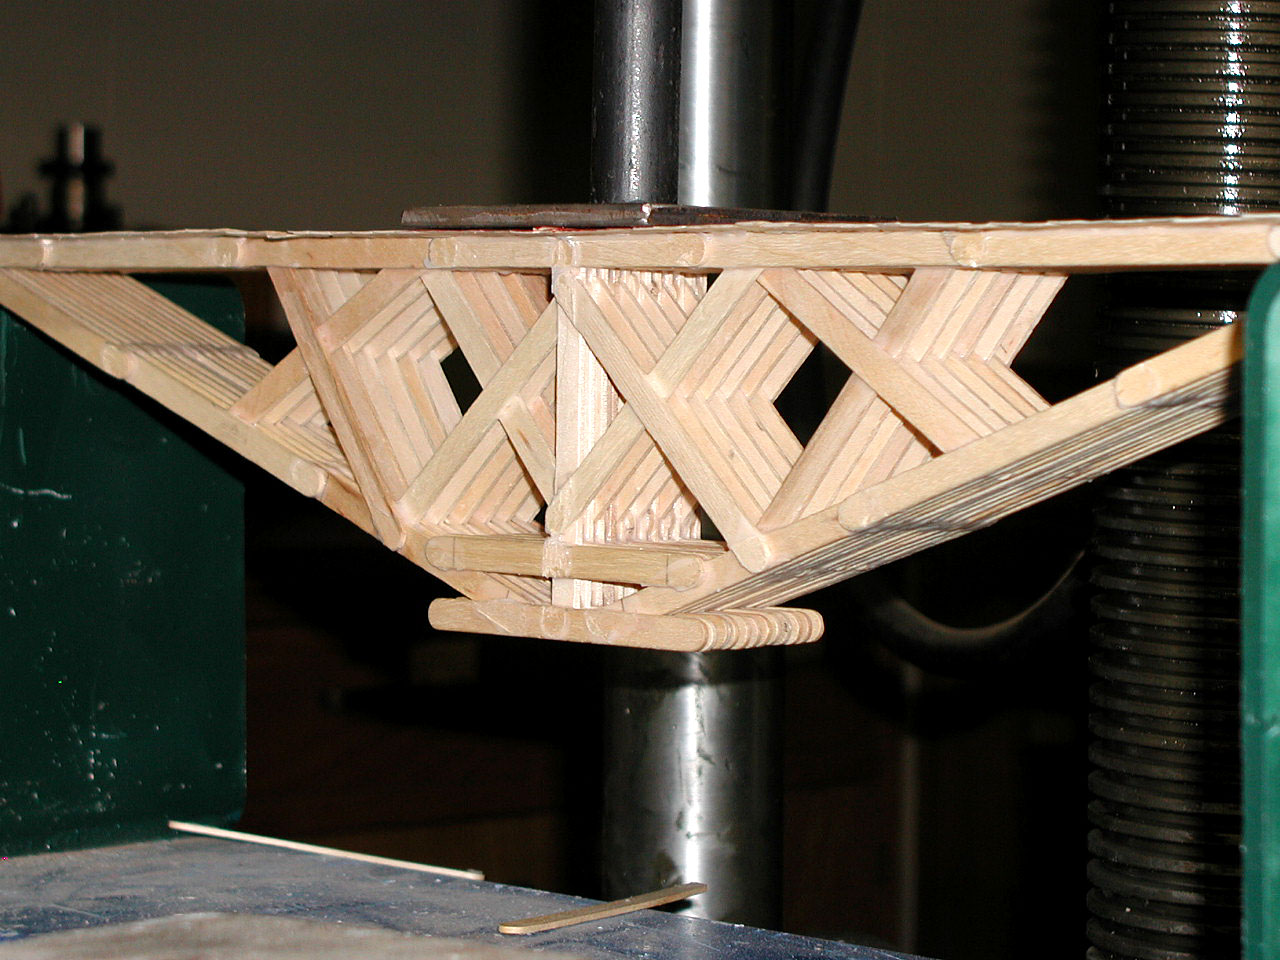 how to build a popsicle stick bridge with 200 sticks